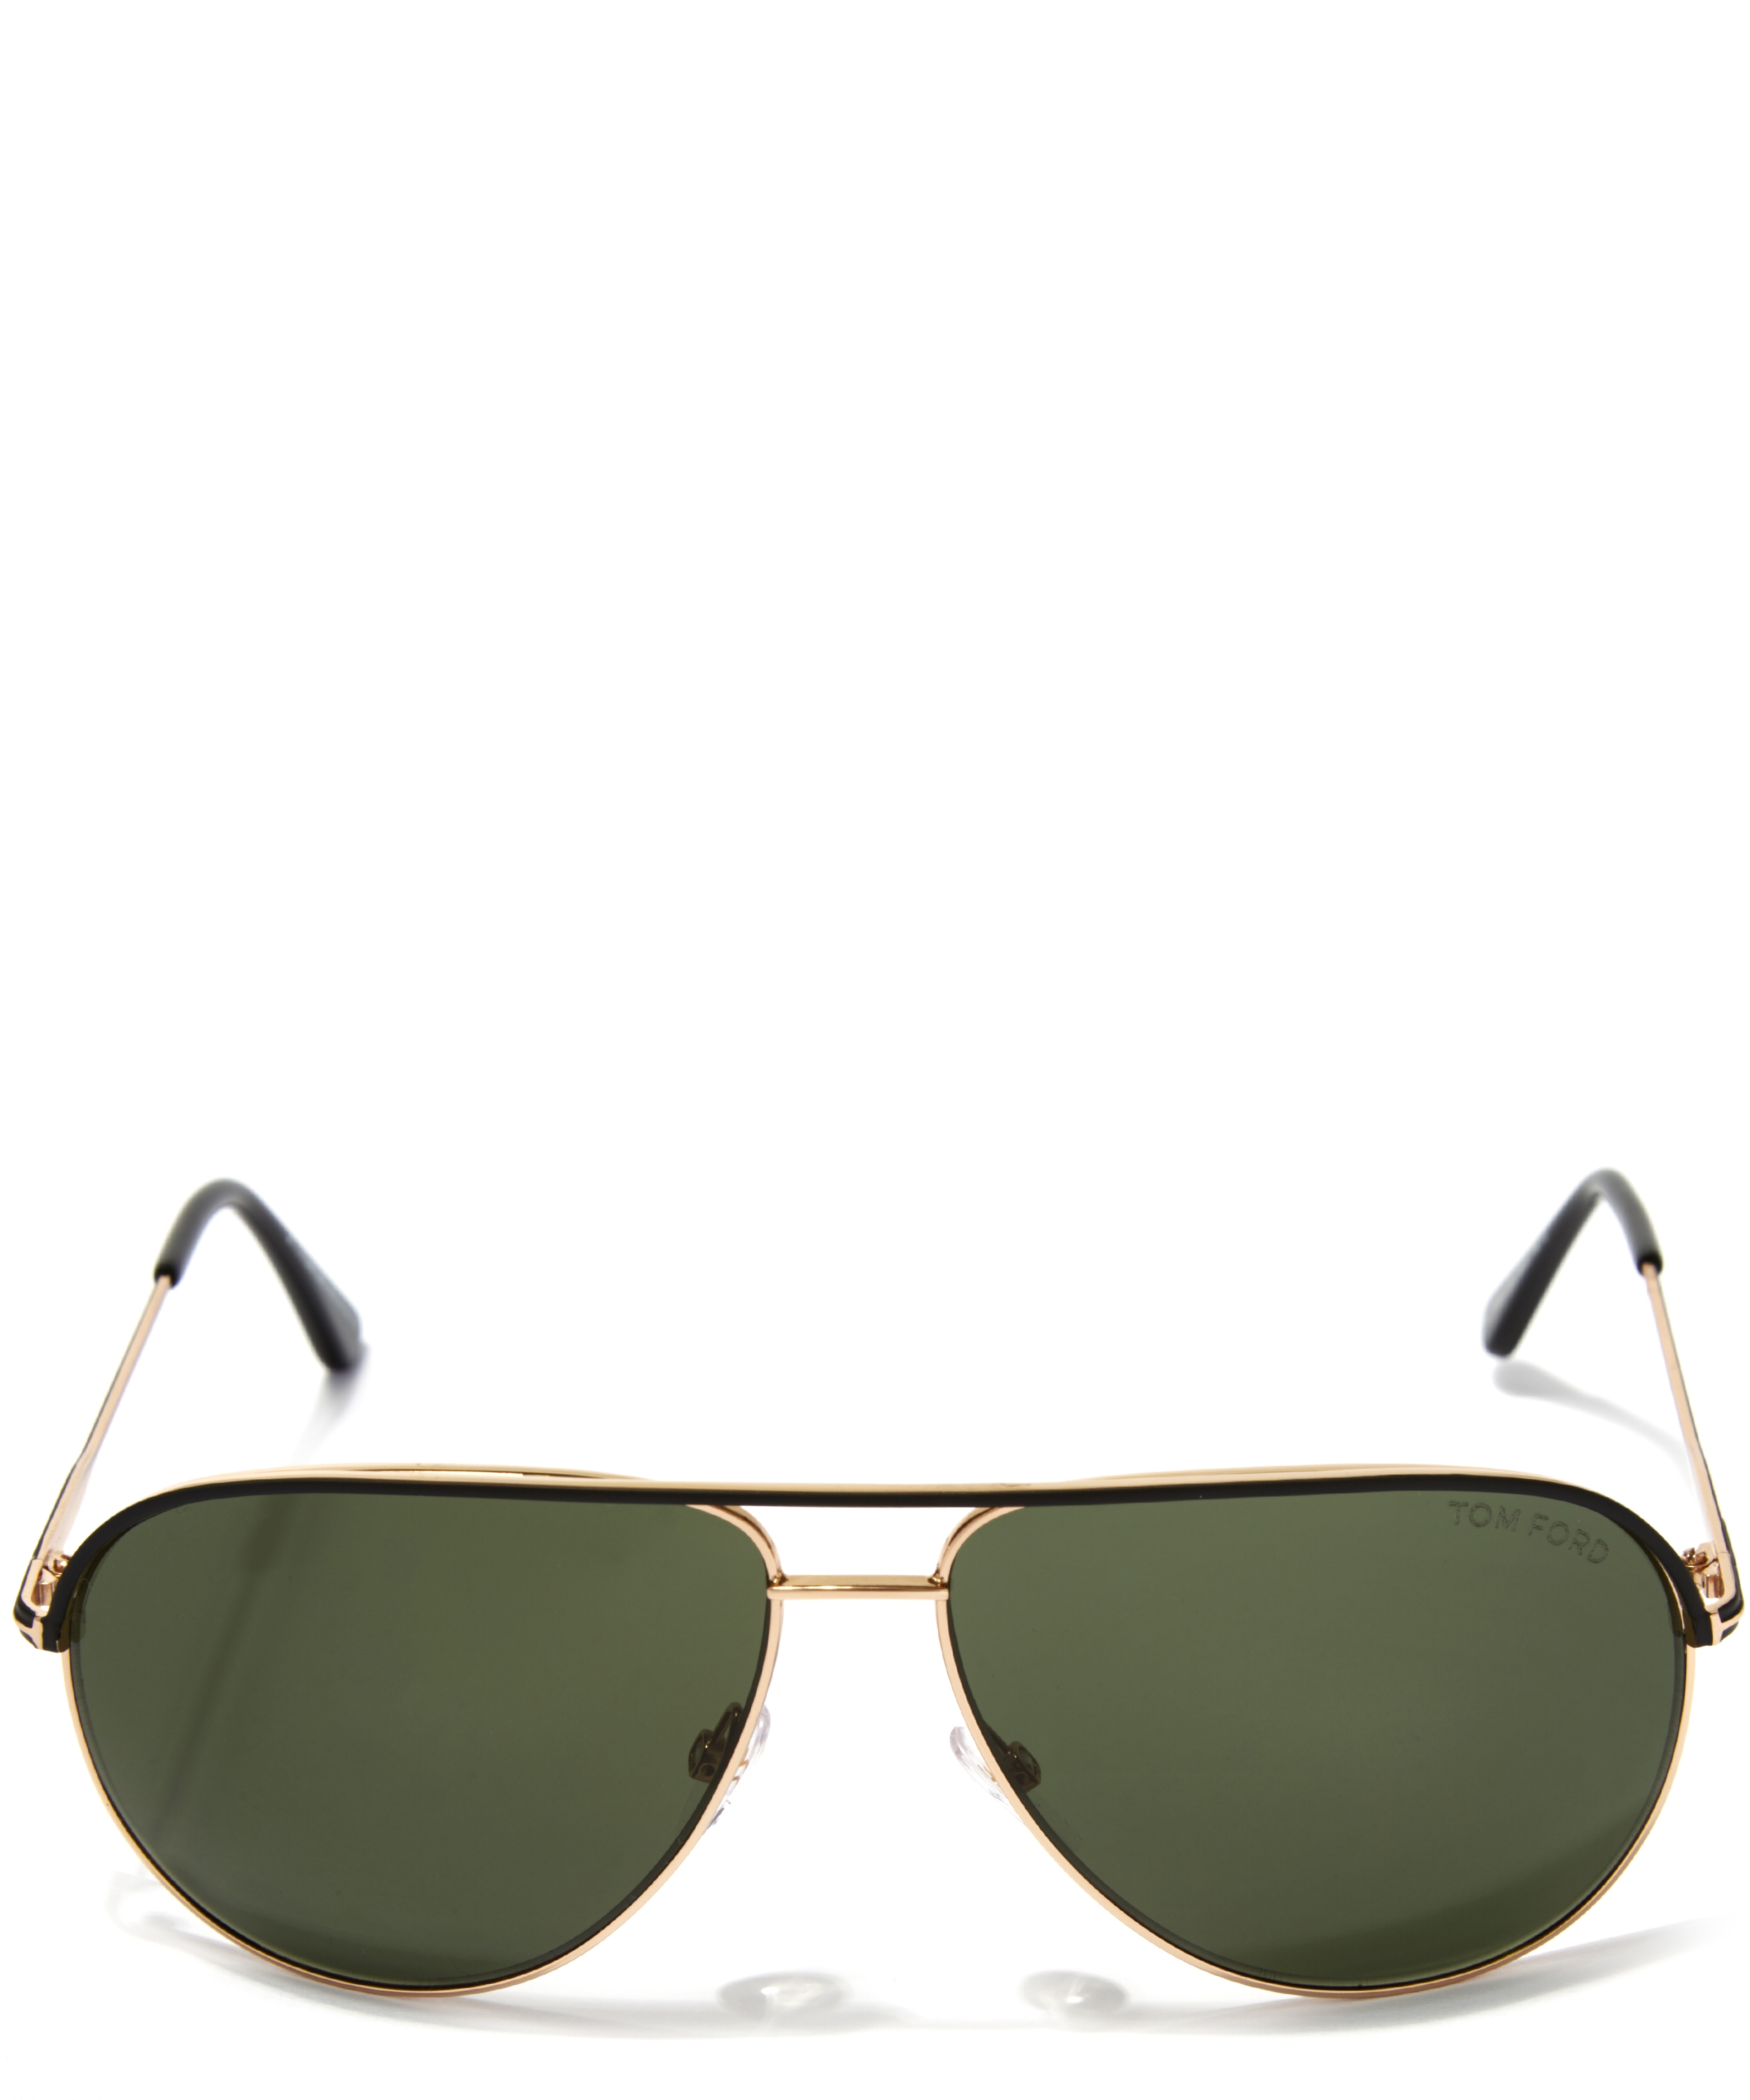 151506f779 Lyst - Tom Ford Cole Ft0285 Sunglasses in Black for Men